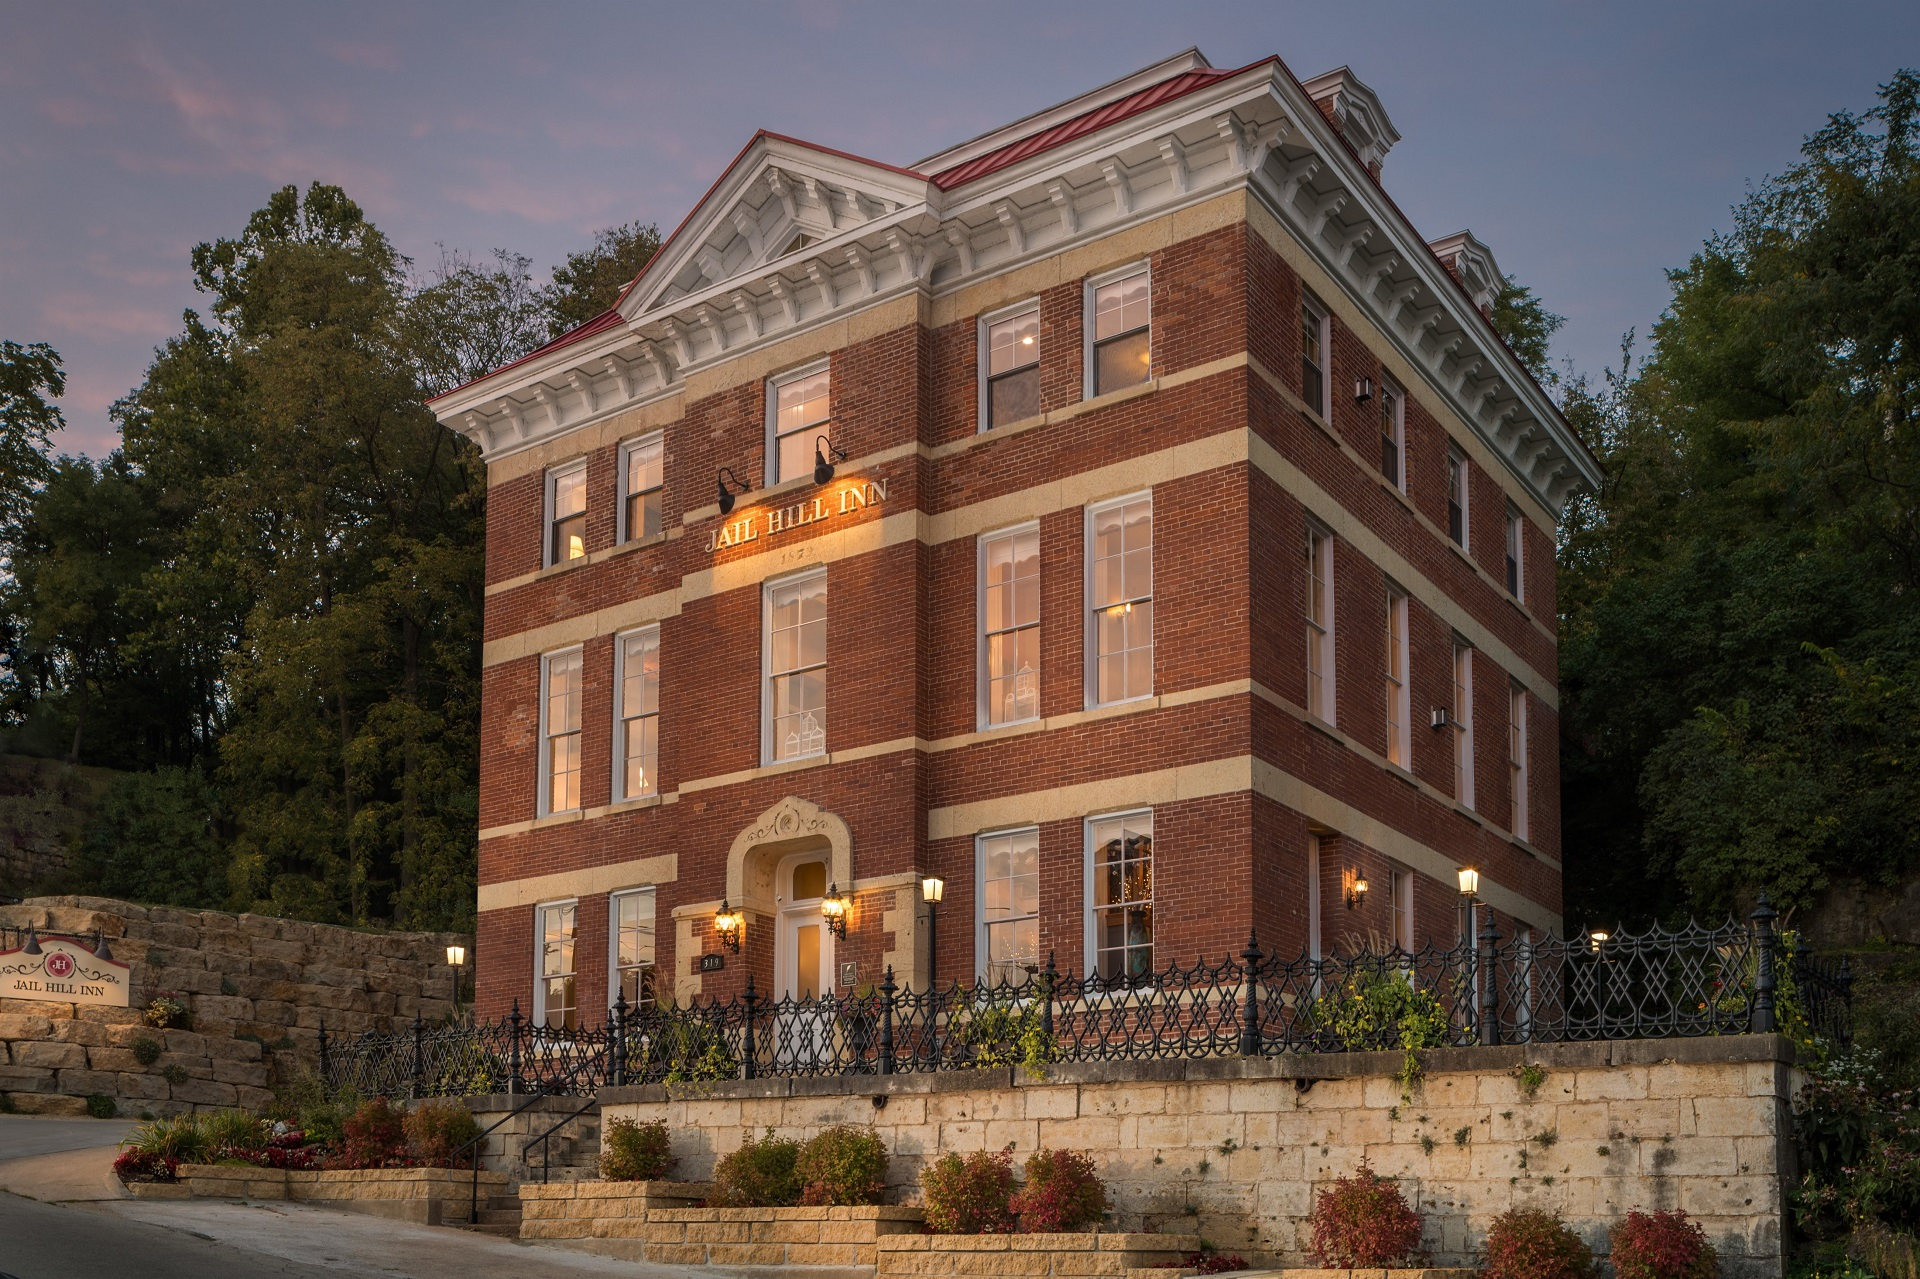 JAIL HILL INN TRAVELERS CHOICE TOP 25 INNS IN THE WORLD